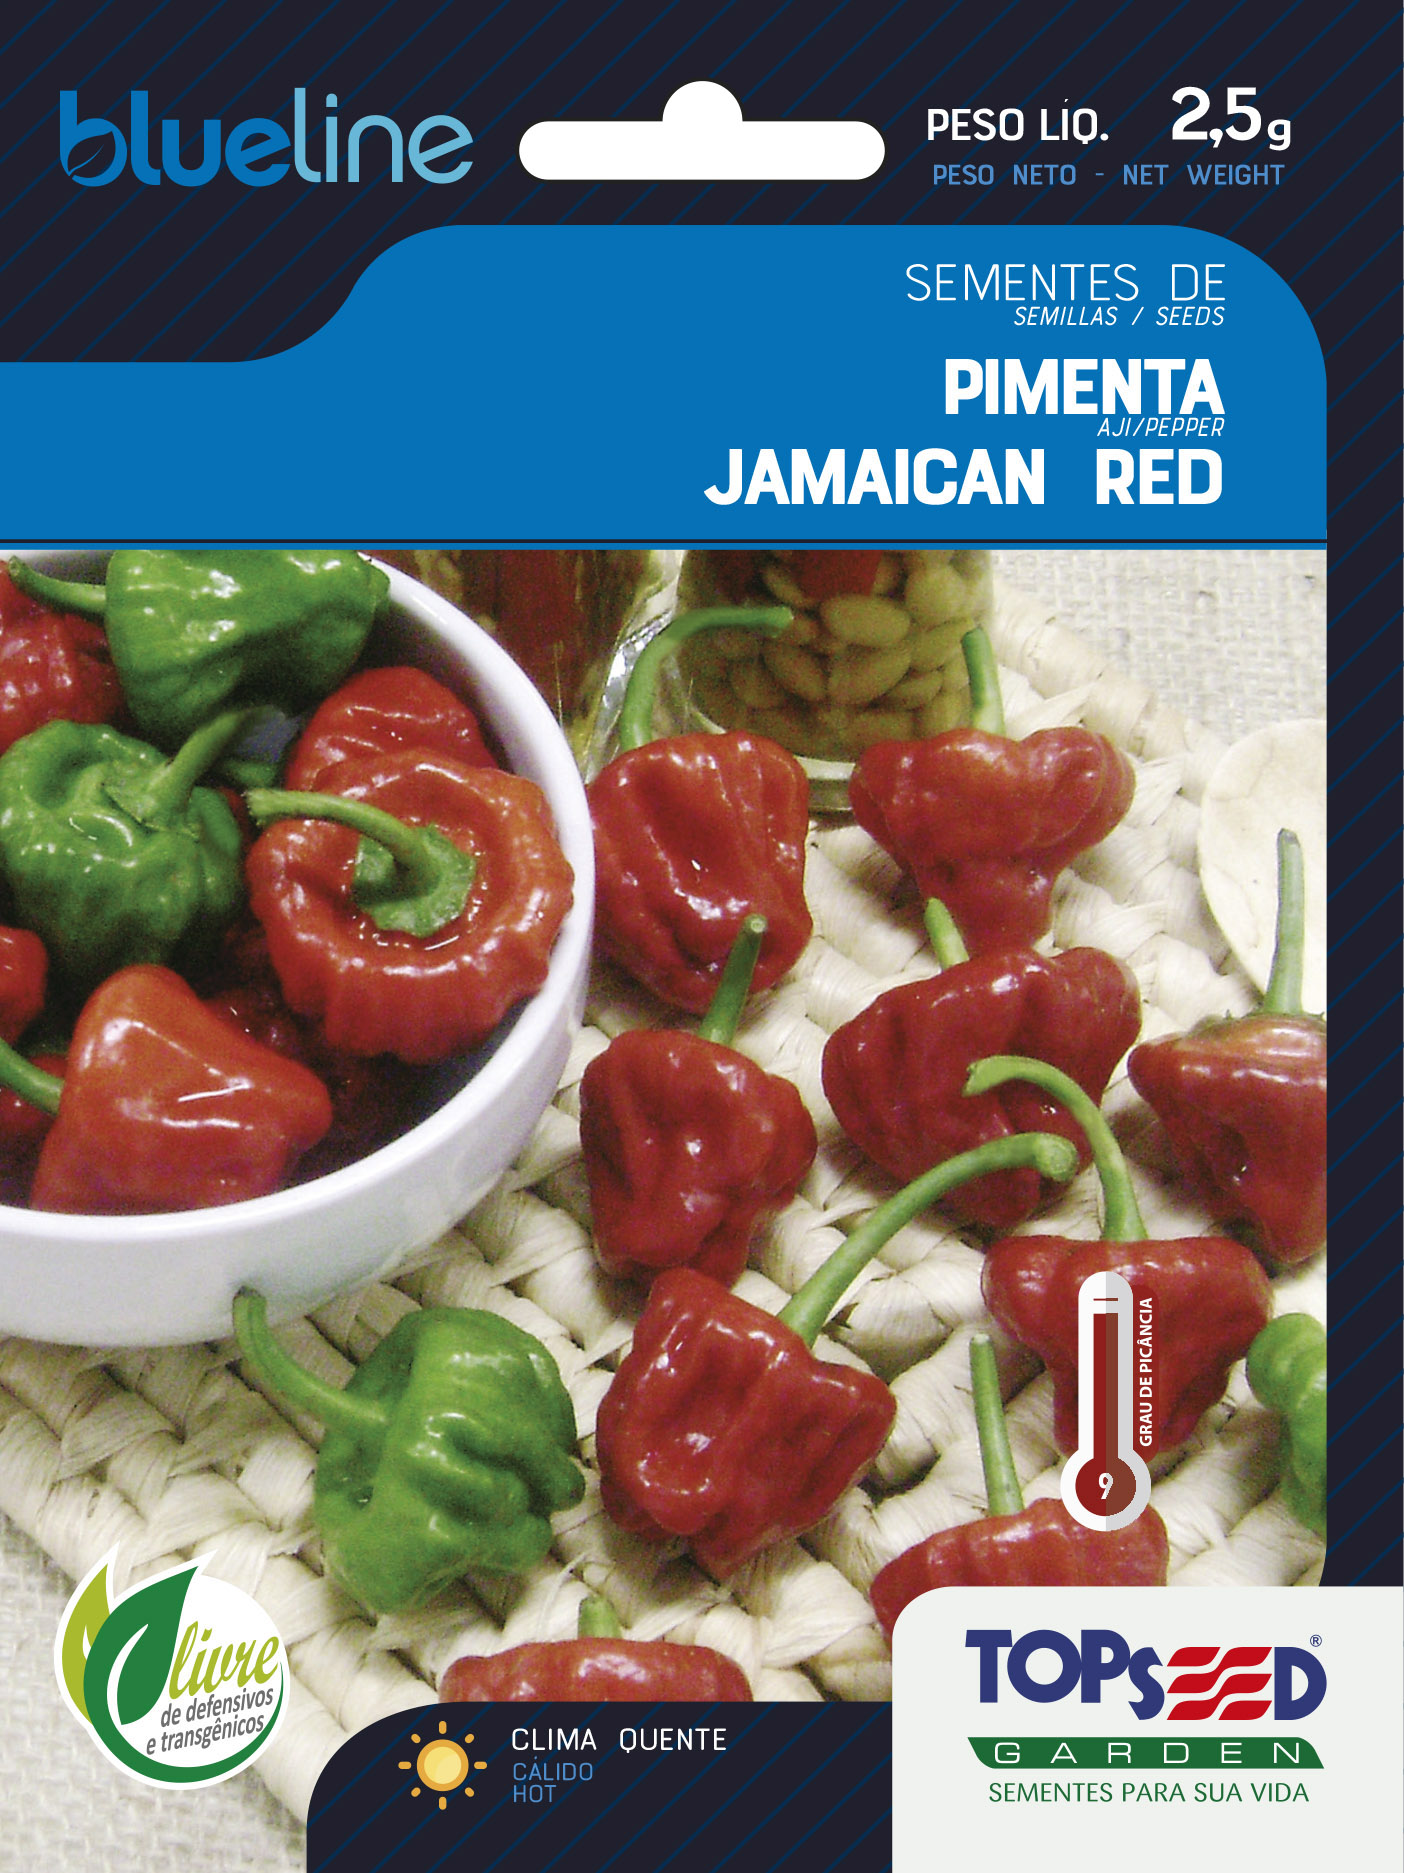 PIMENTA JAMAICAN RED